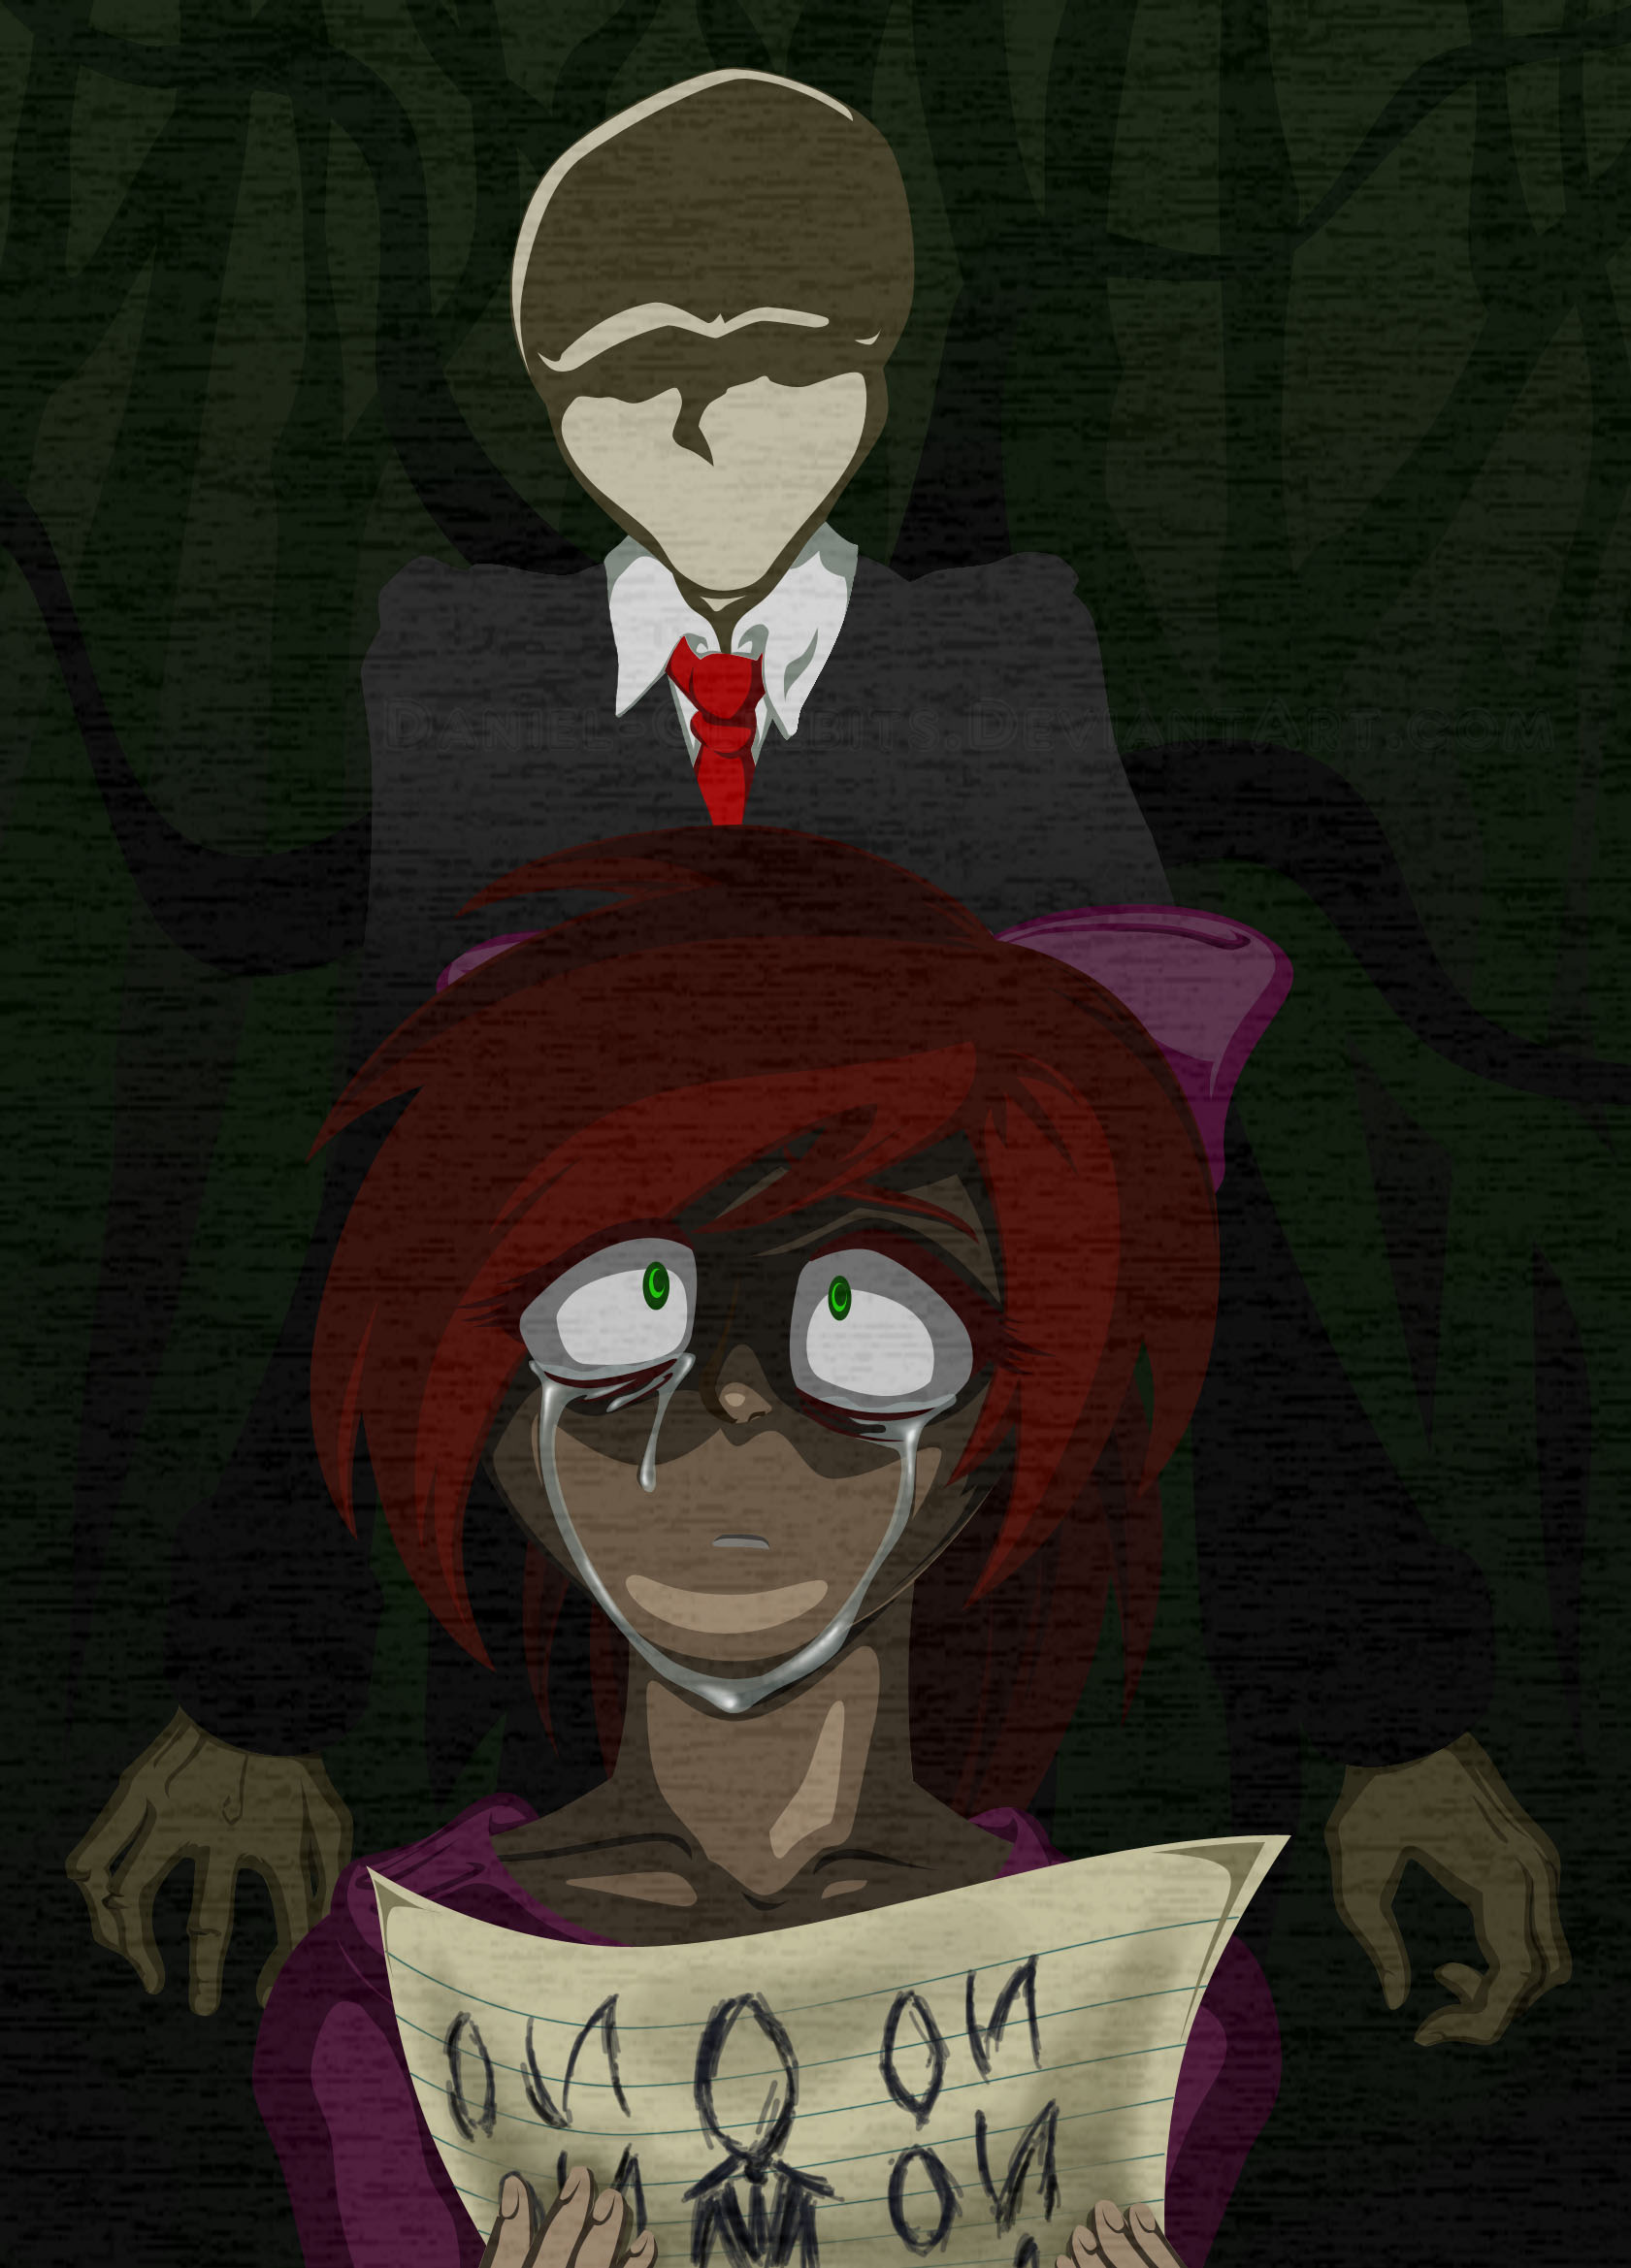 The Slenderman By Anglicanenvoy On Newgrounds